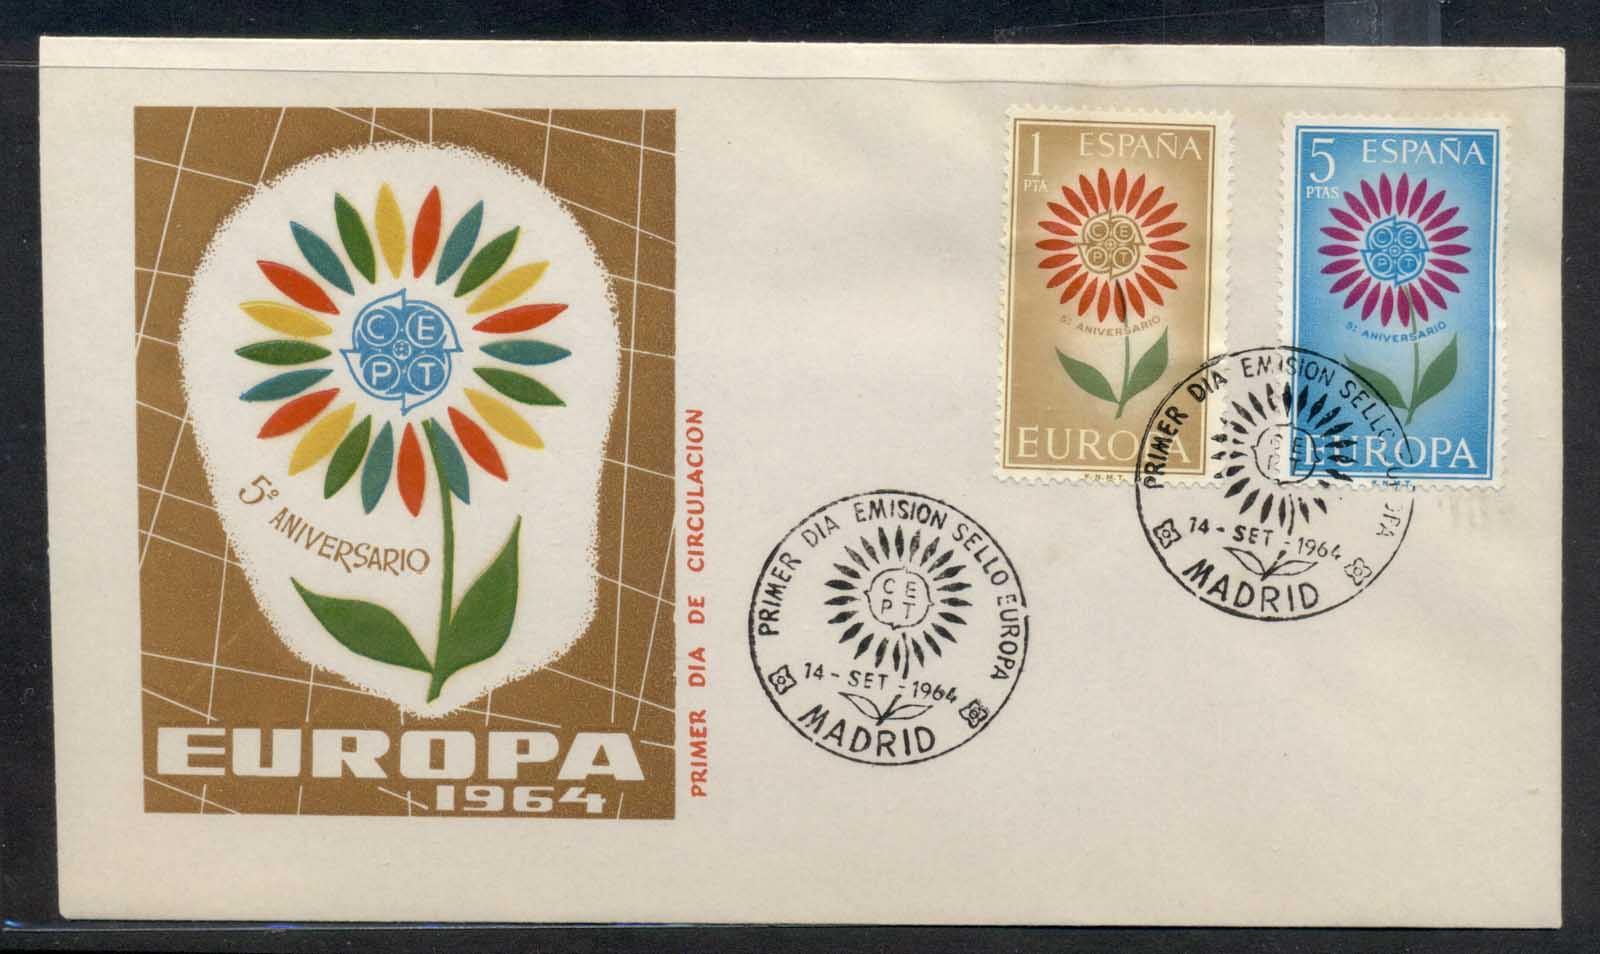 Spain 1964 Europa Daisy of Petals FDC